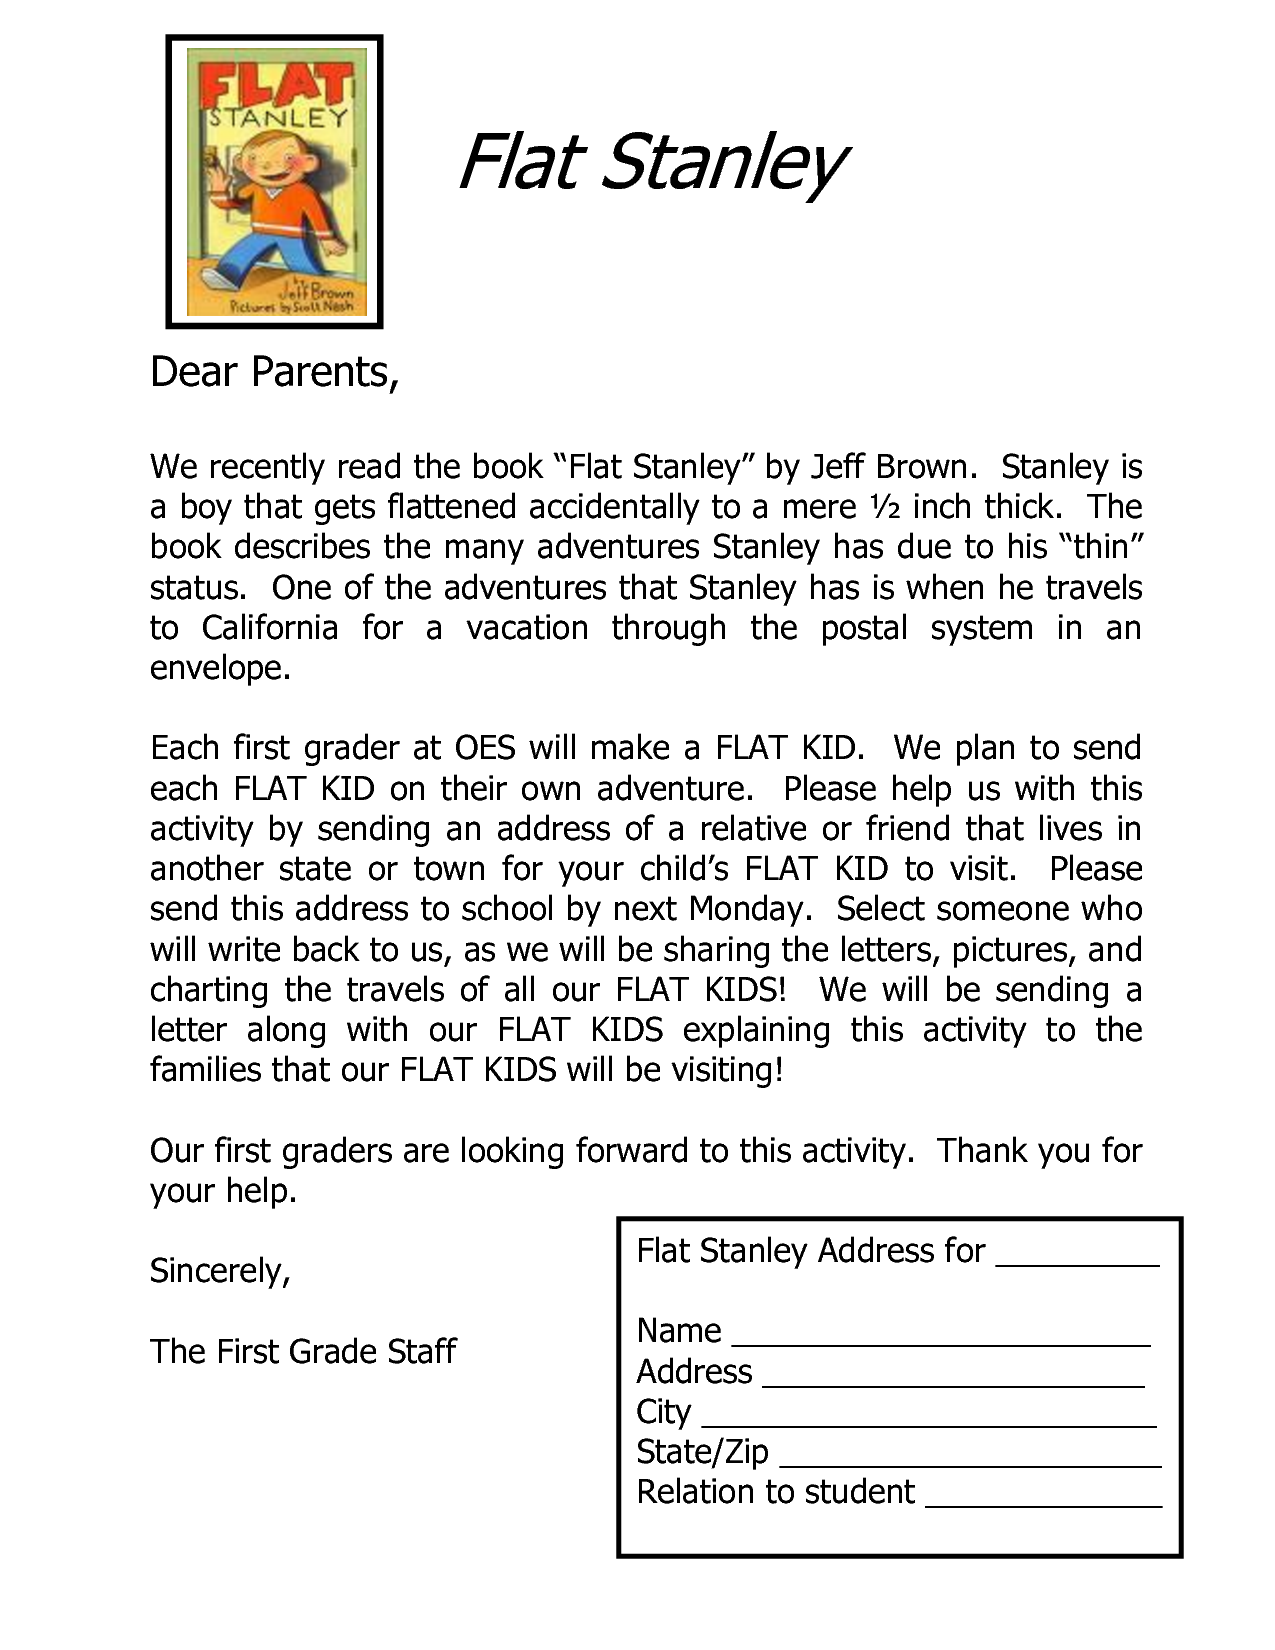 Flat stanley letter to parents for address google search flat flat stanley letter to parents for address google search more maxwellsz